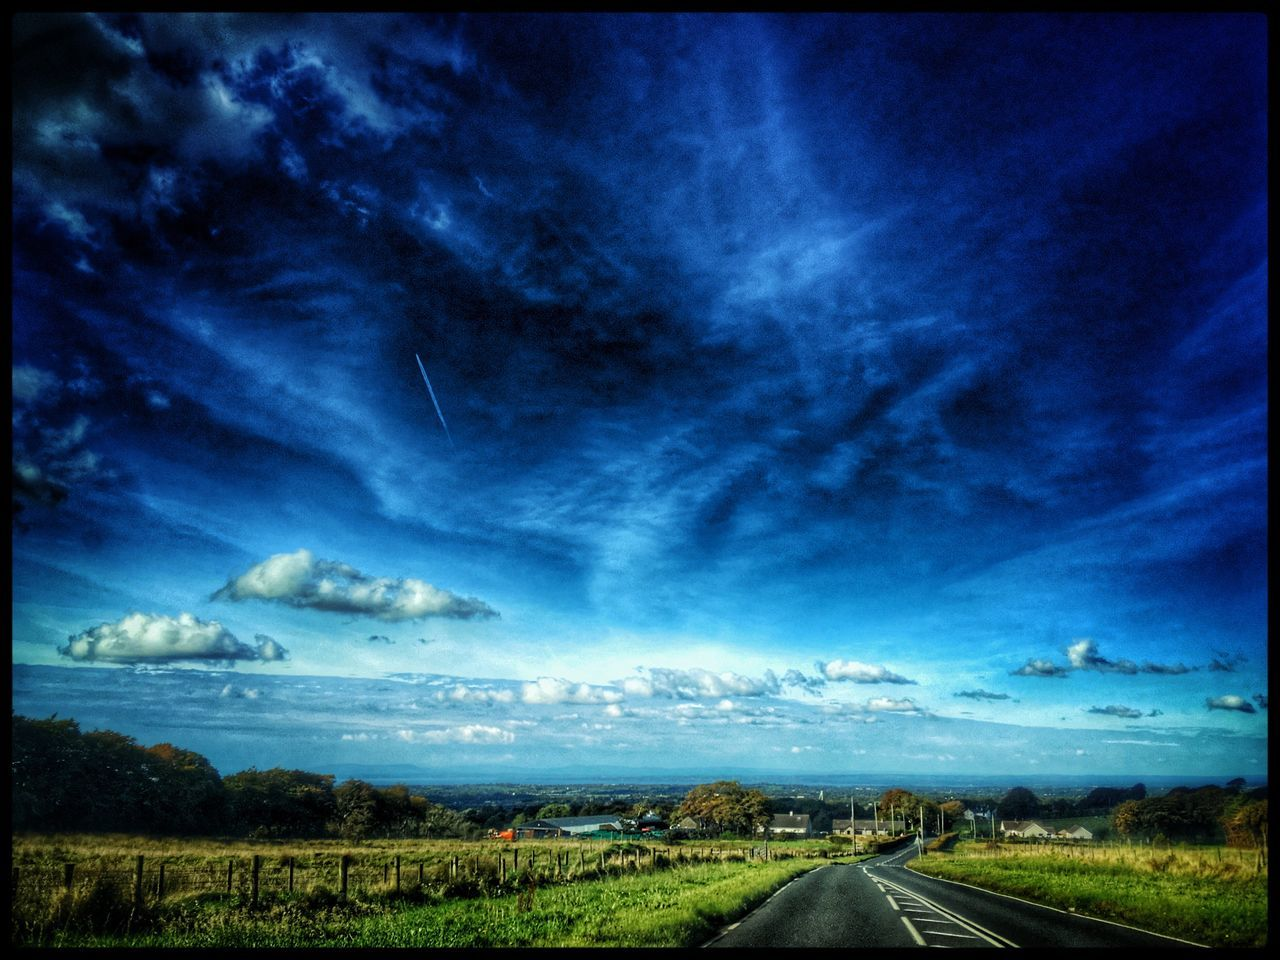 Landscape Tranquil Scene Blue The Way Forward Road Sky Transportation Tranquility Grass Scenics Solitude Countryside Non-urban Scene Field Plant Beauty In Nature Nature Cloud - Sky Diminishing Perspective Day